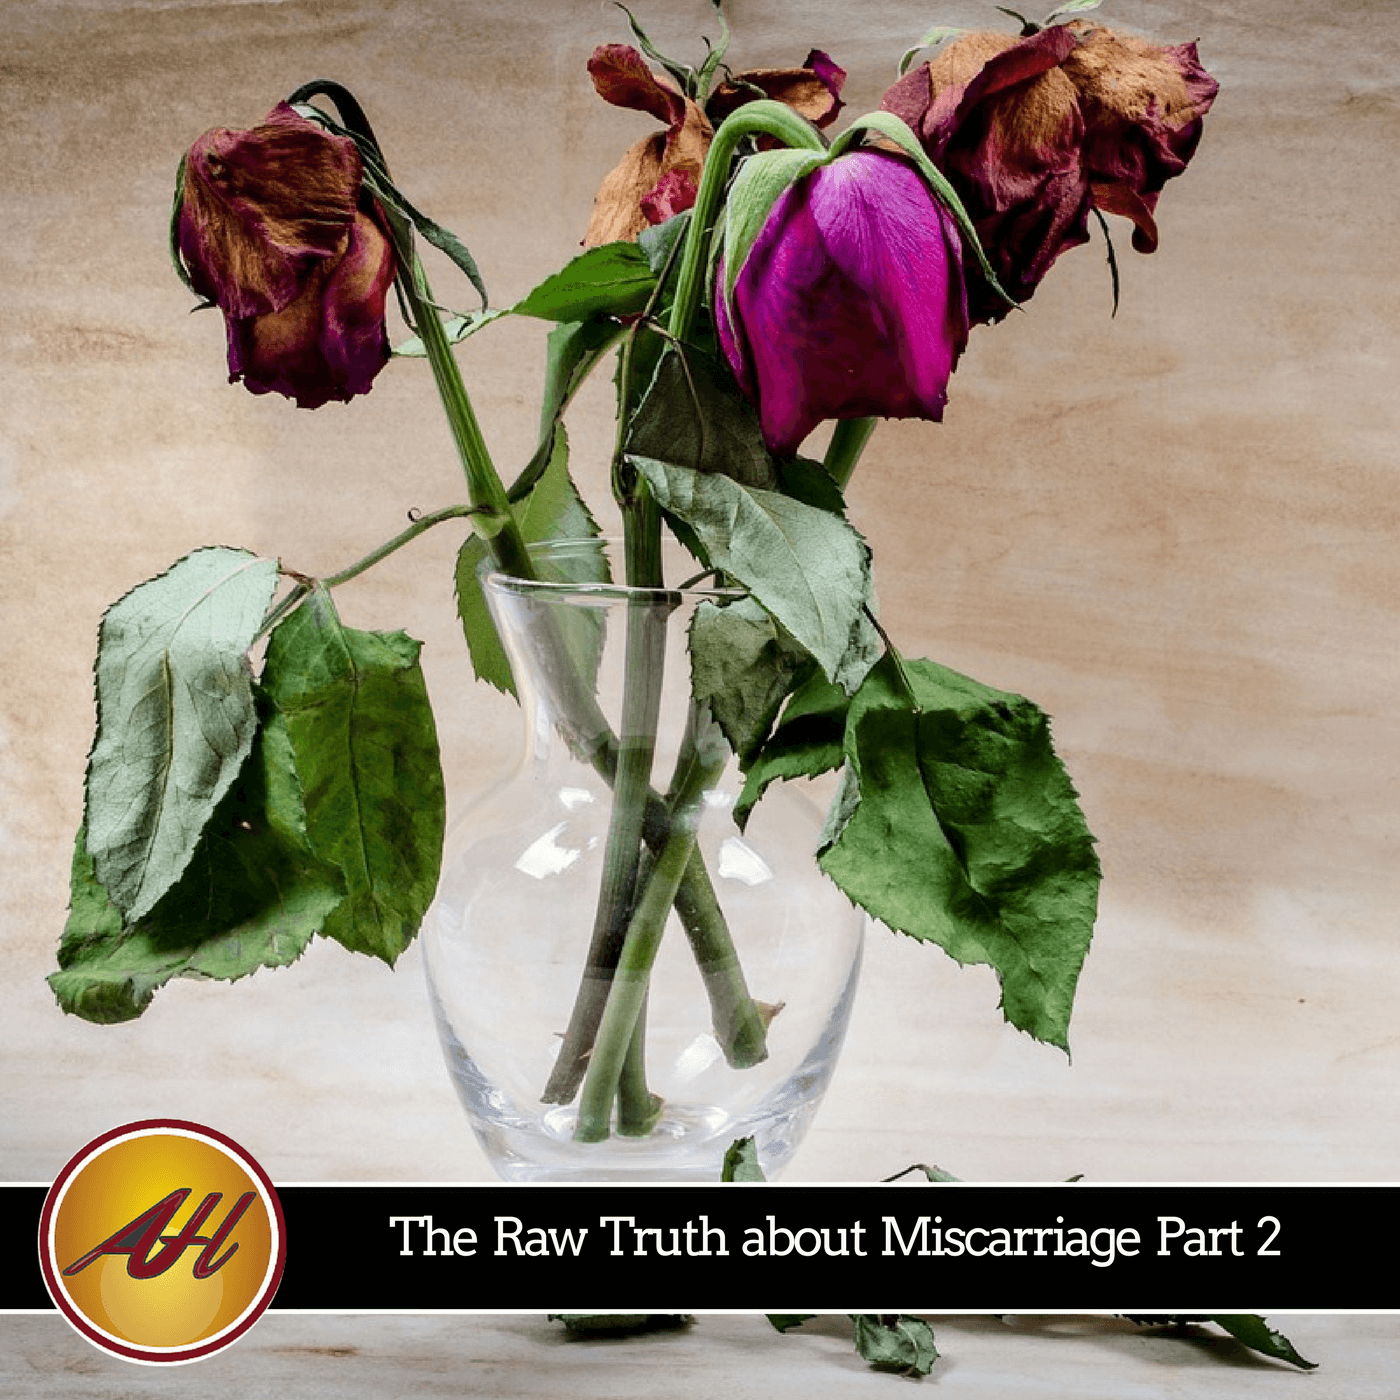 Miscarriage is painful